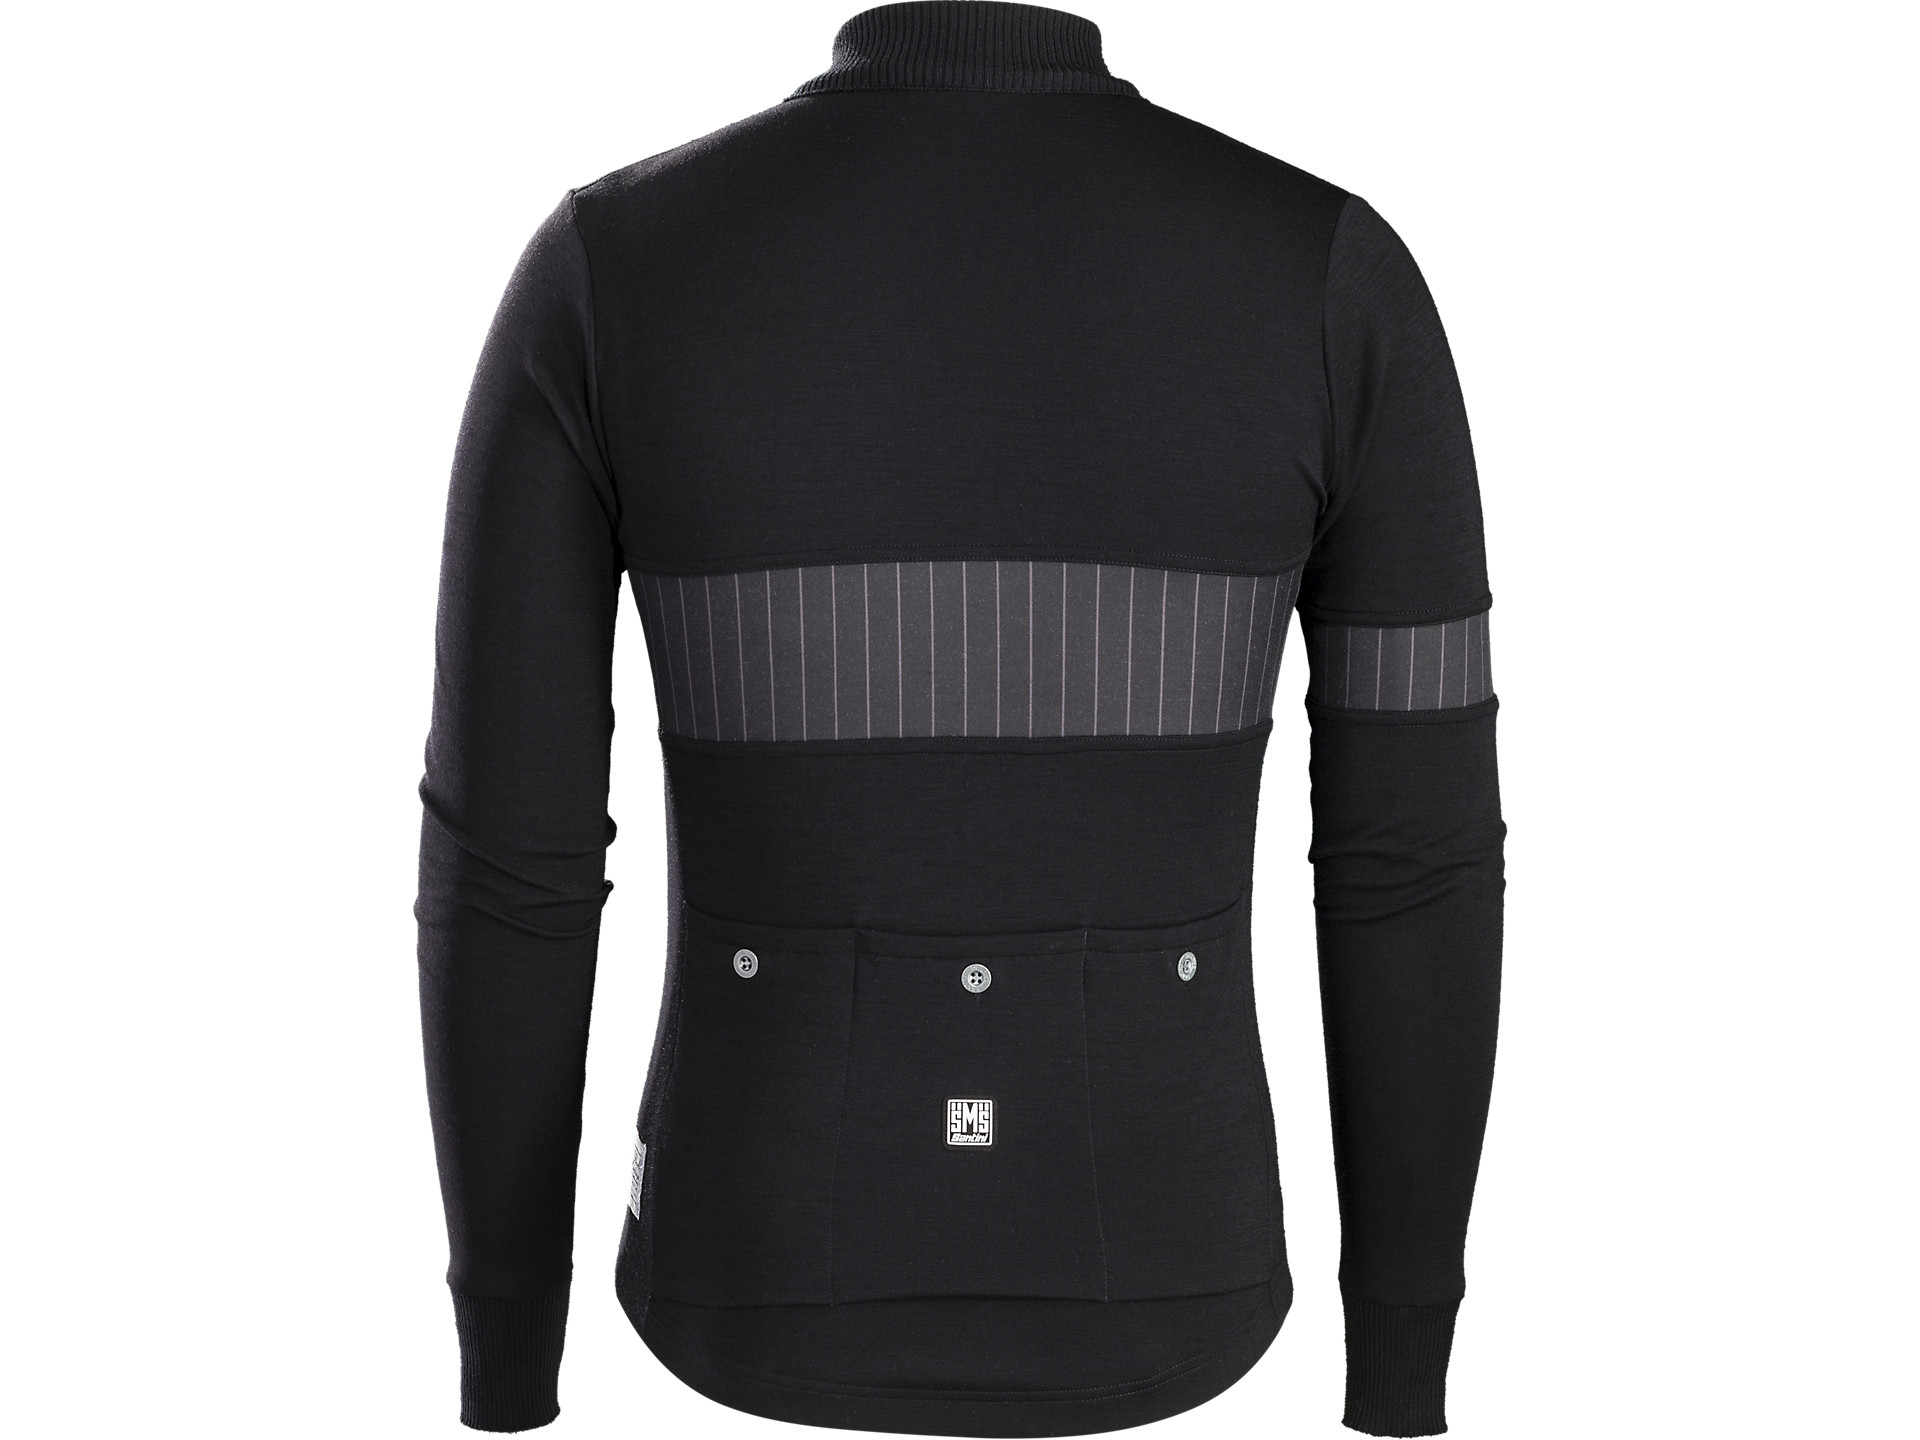 Santini Trek-Segafredo Icon Wool Long Sleeve Jersey. Overview  Tech specs   Sizing   fit  Reviews  FAQs  Buy. Prev Next 20bd30047